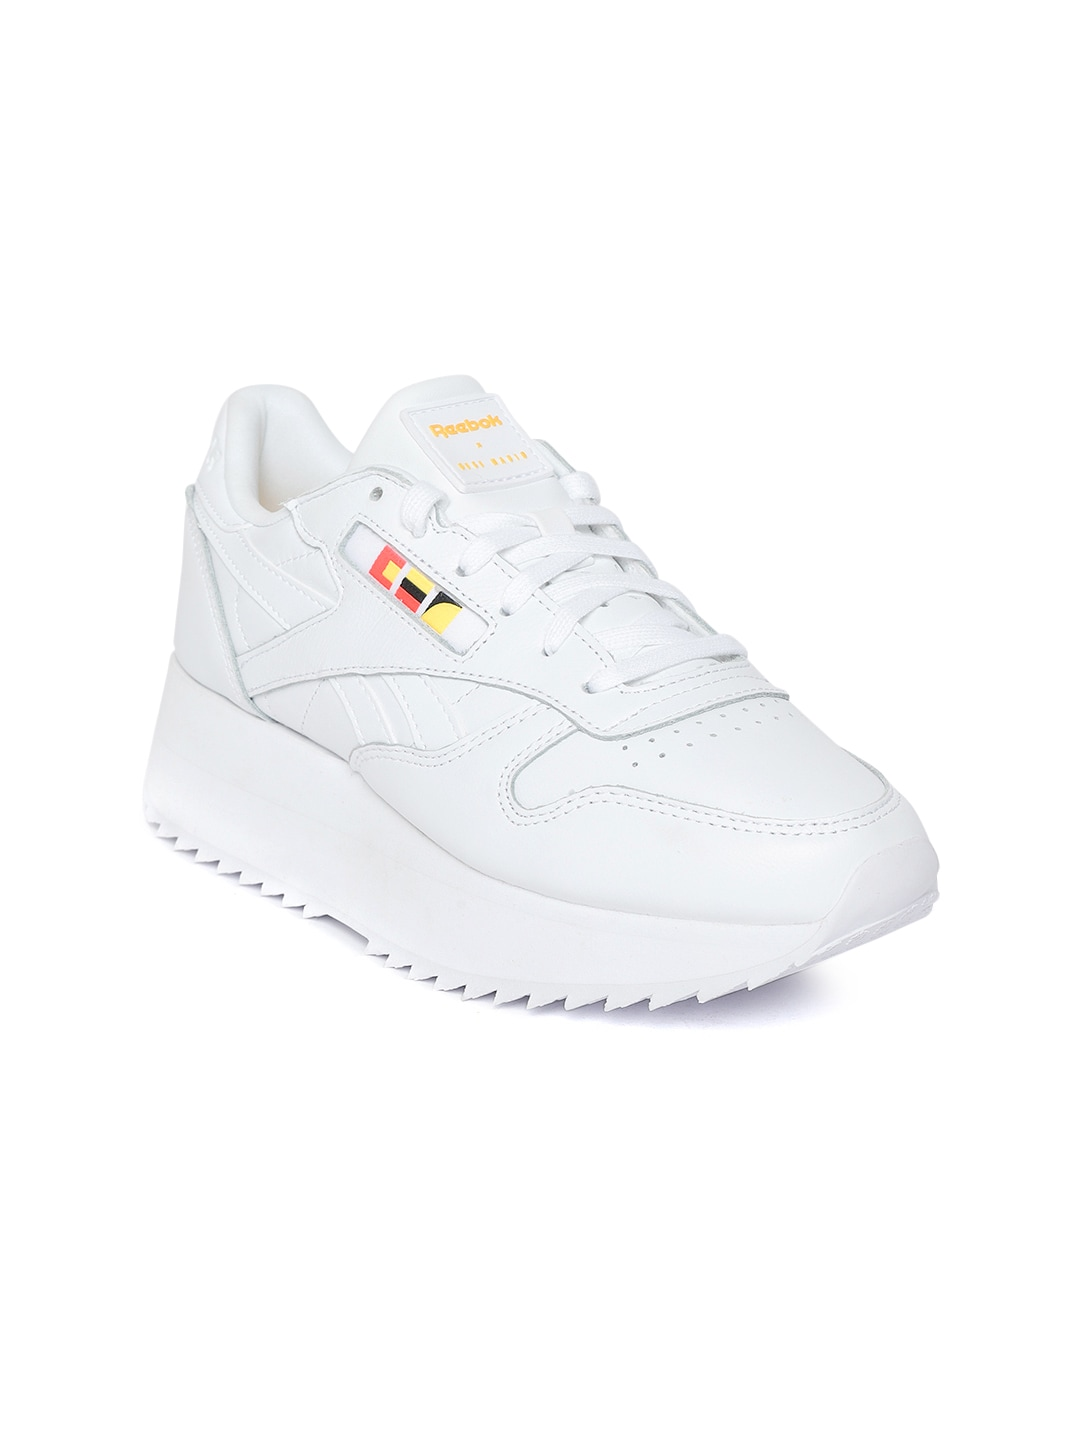 282a6e074956a Reebok Casual Shoes - Buy Reebok Casual Shoes Online in India